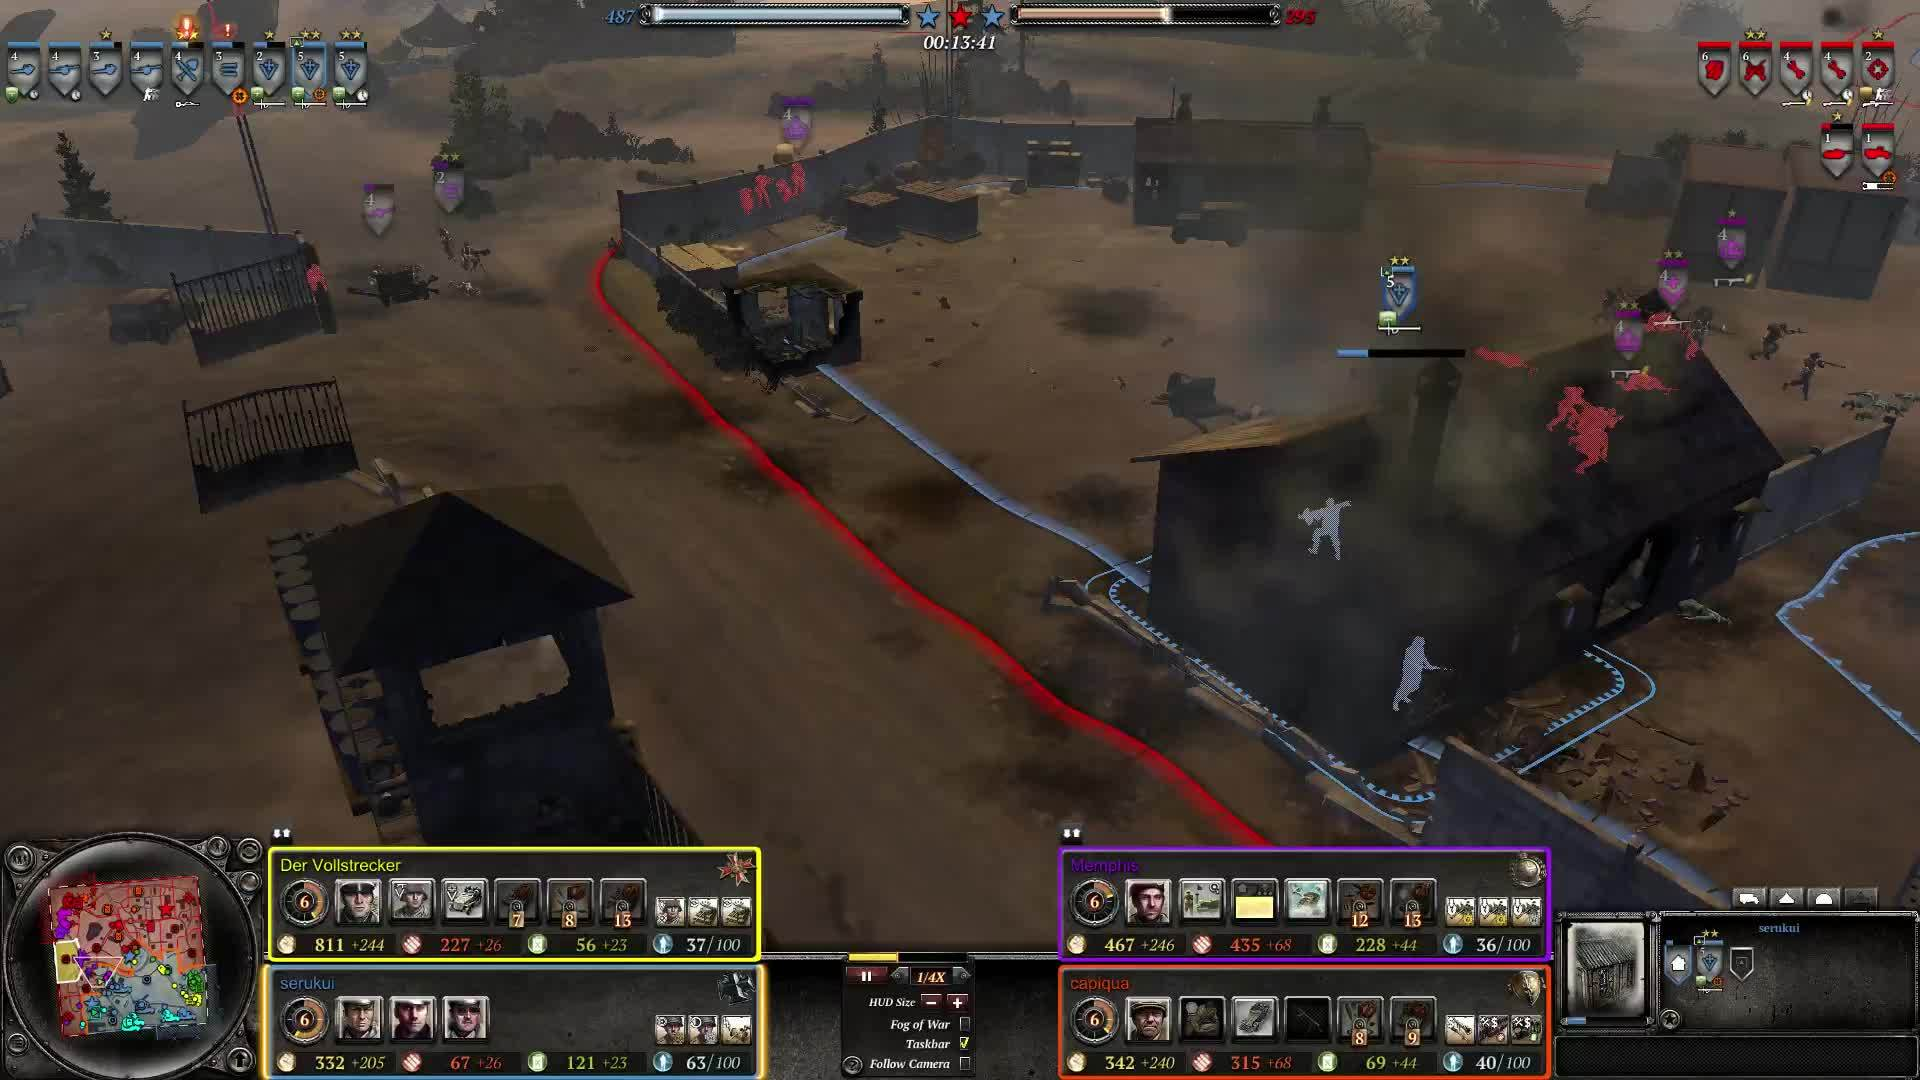 CompanyOfHeroes, companyofheroes, Probably this (reddit) GIFs